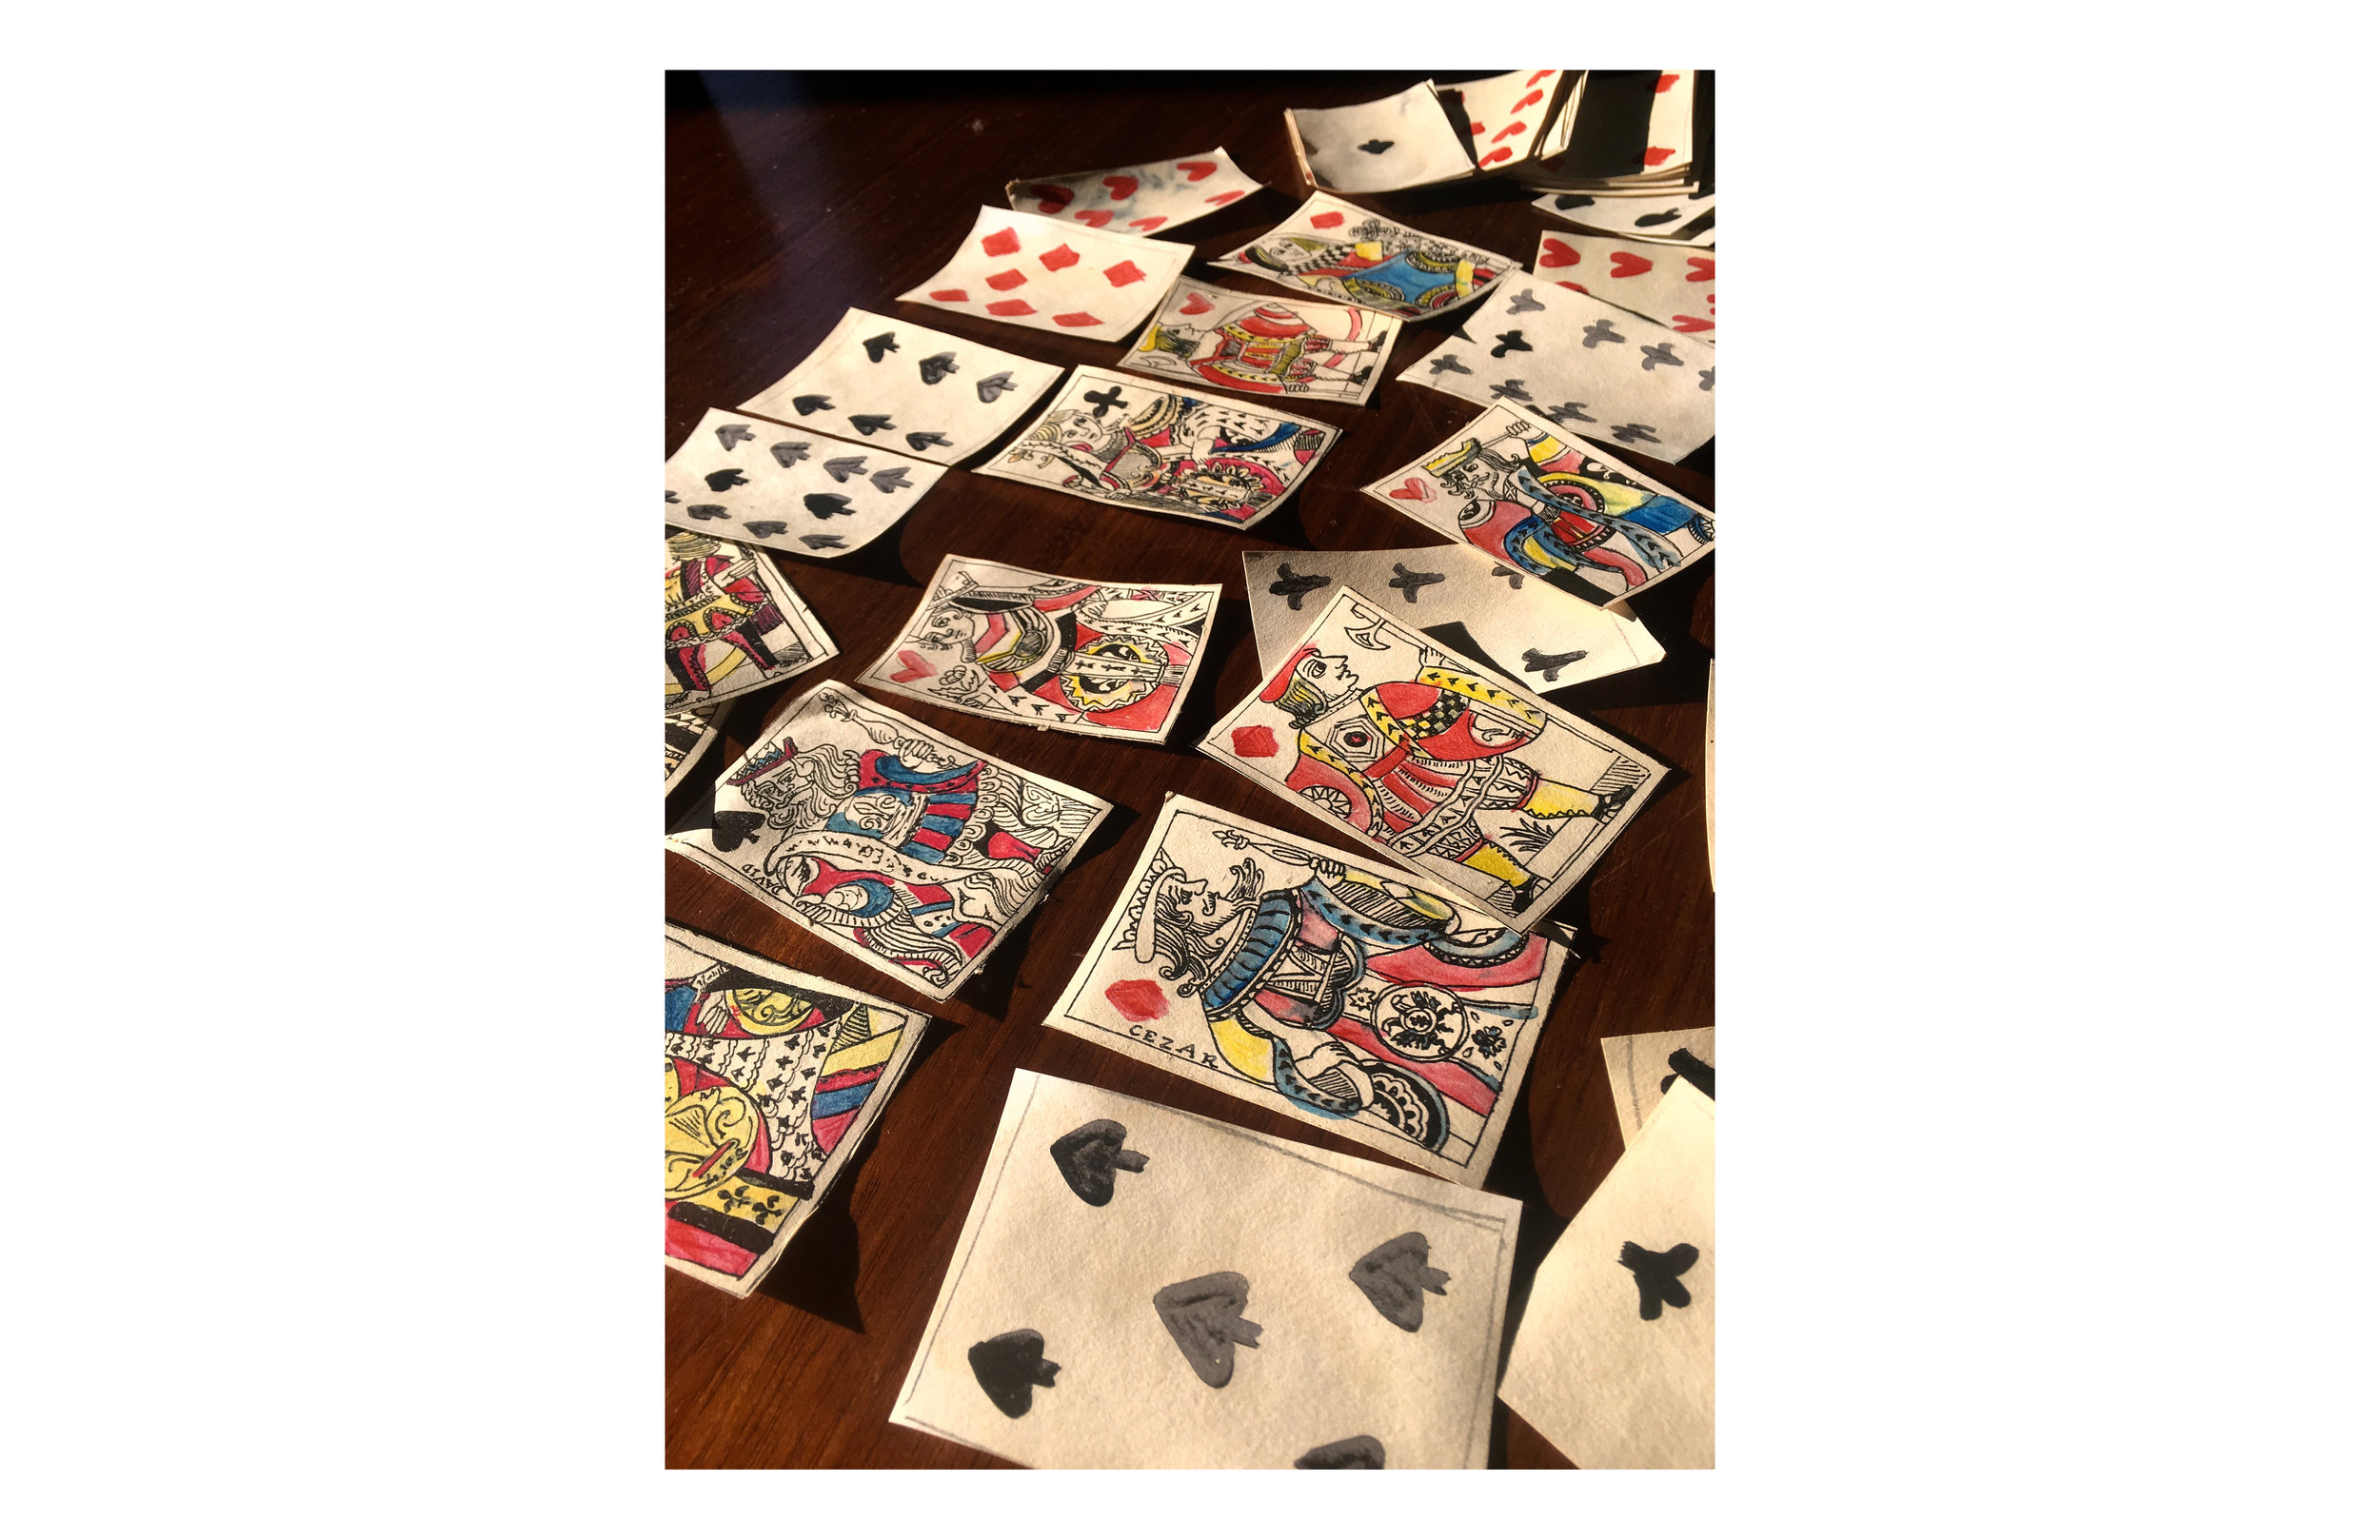 17th Century French Playing Cards, full deck